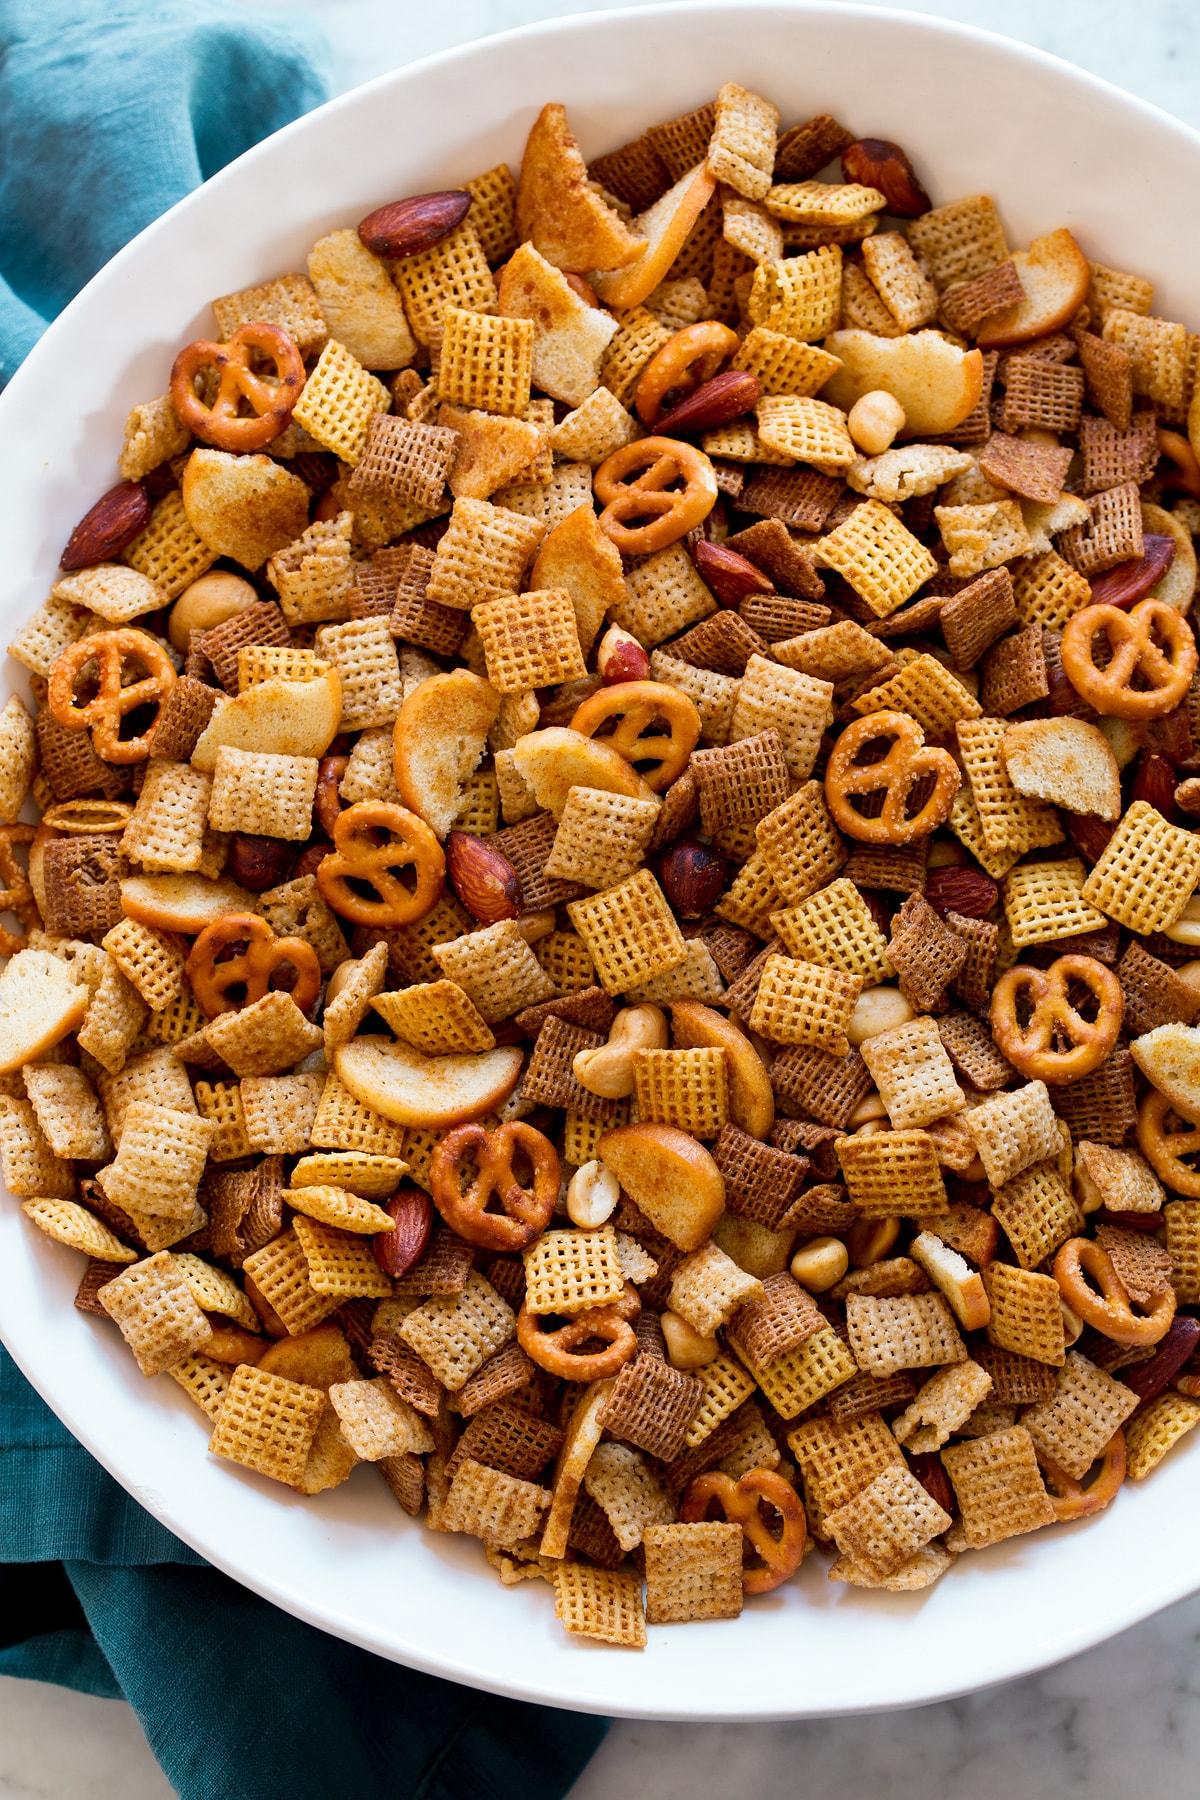 Chex Mix shown from overhead in a big white bowl.